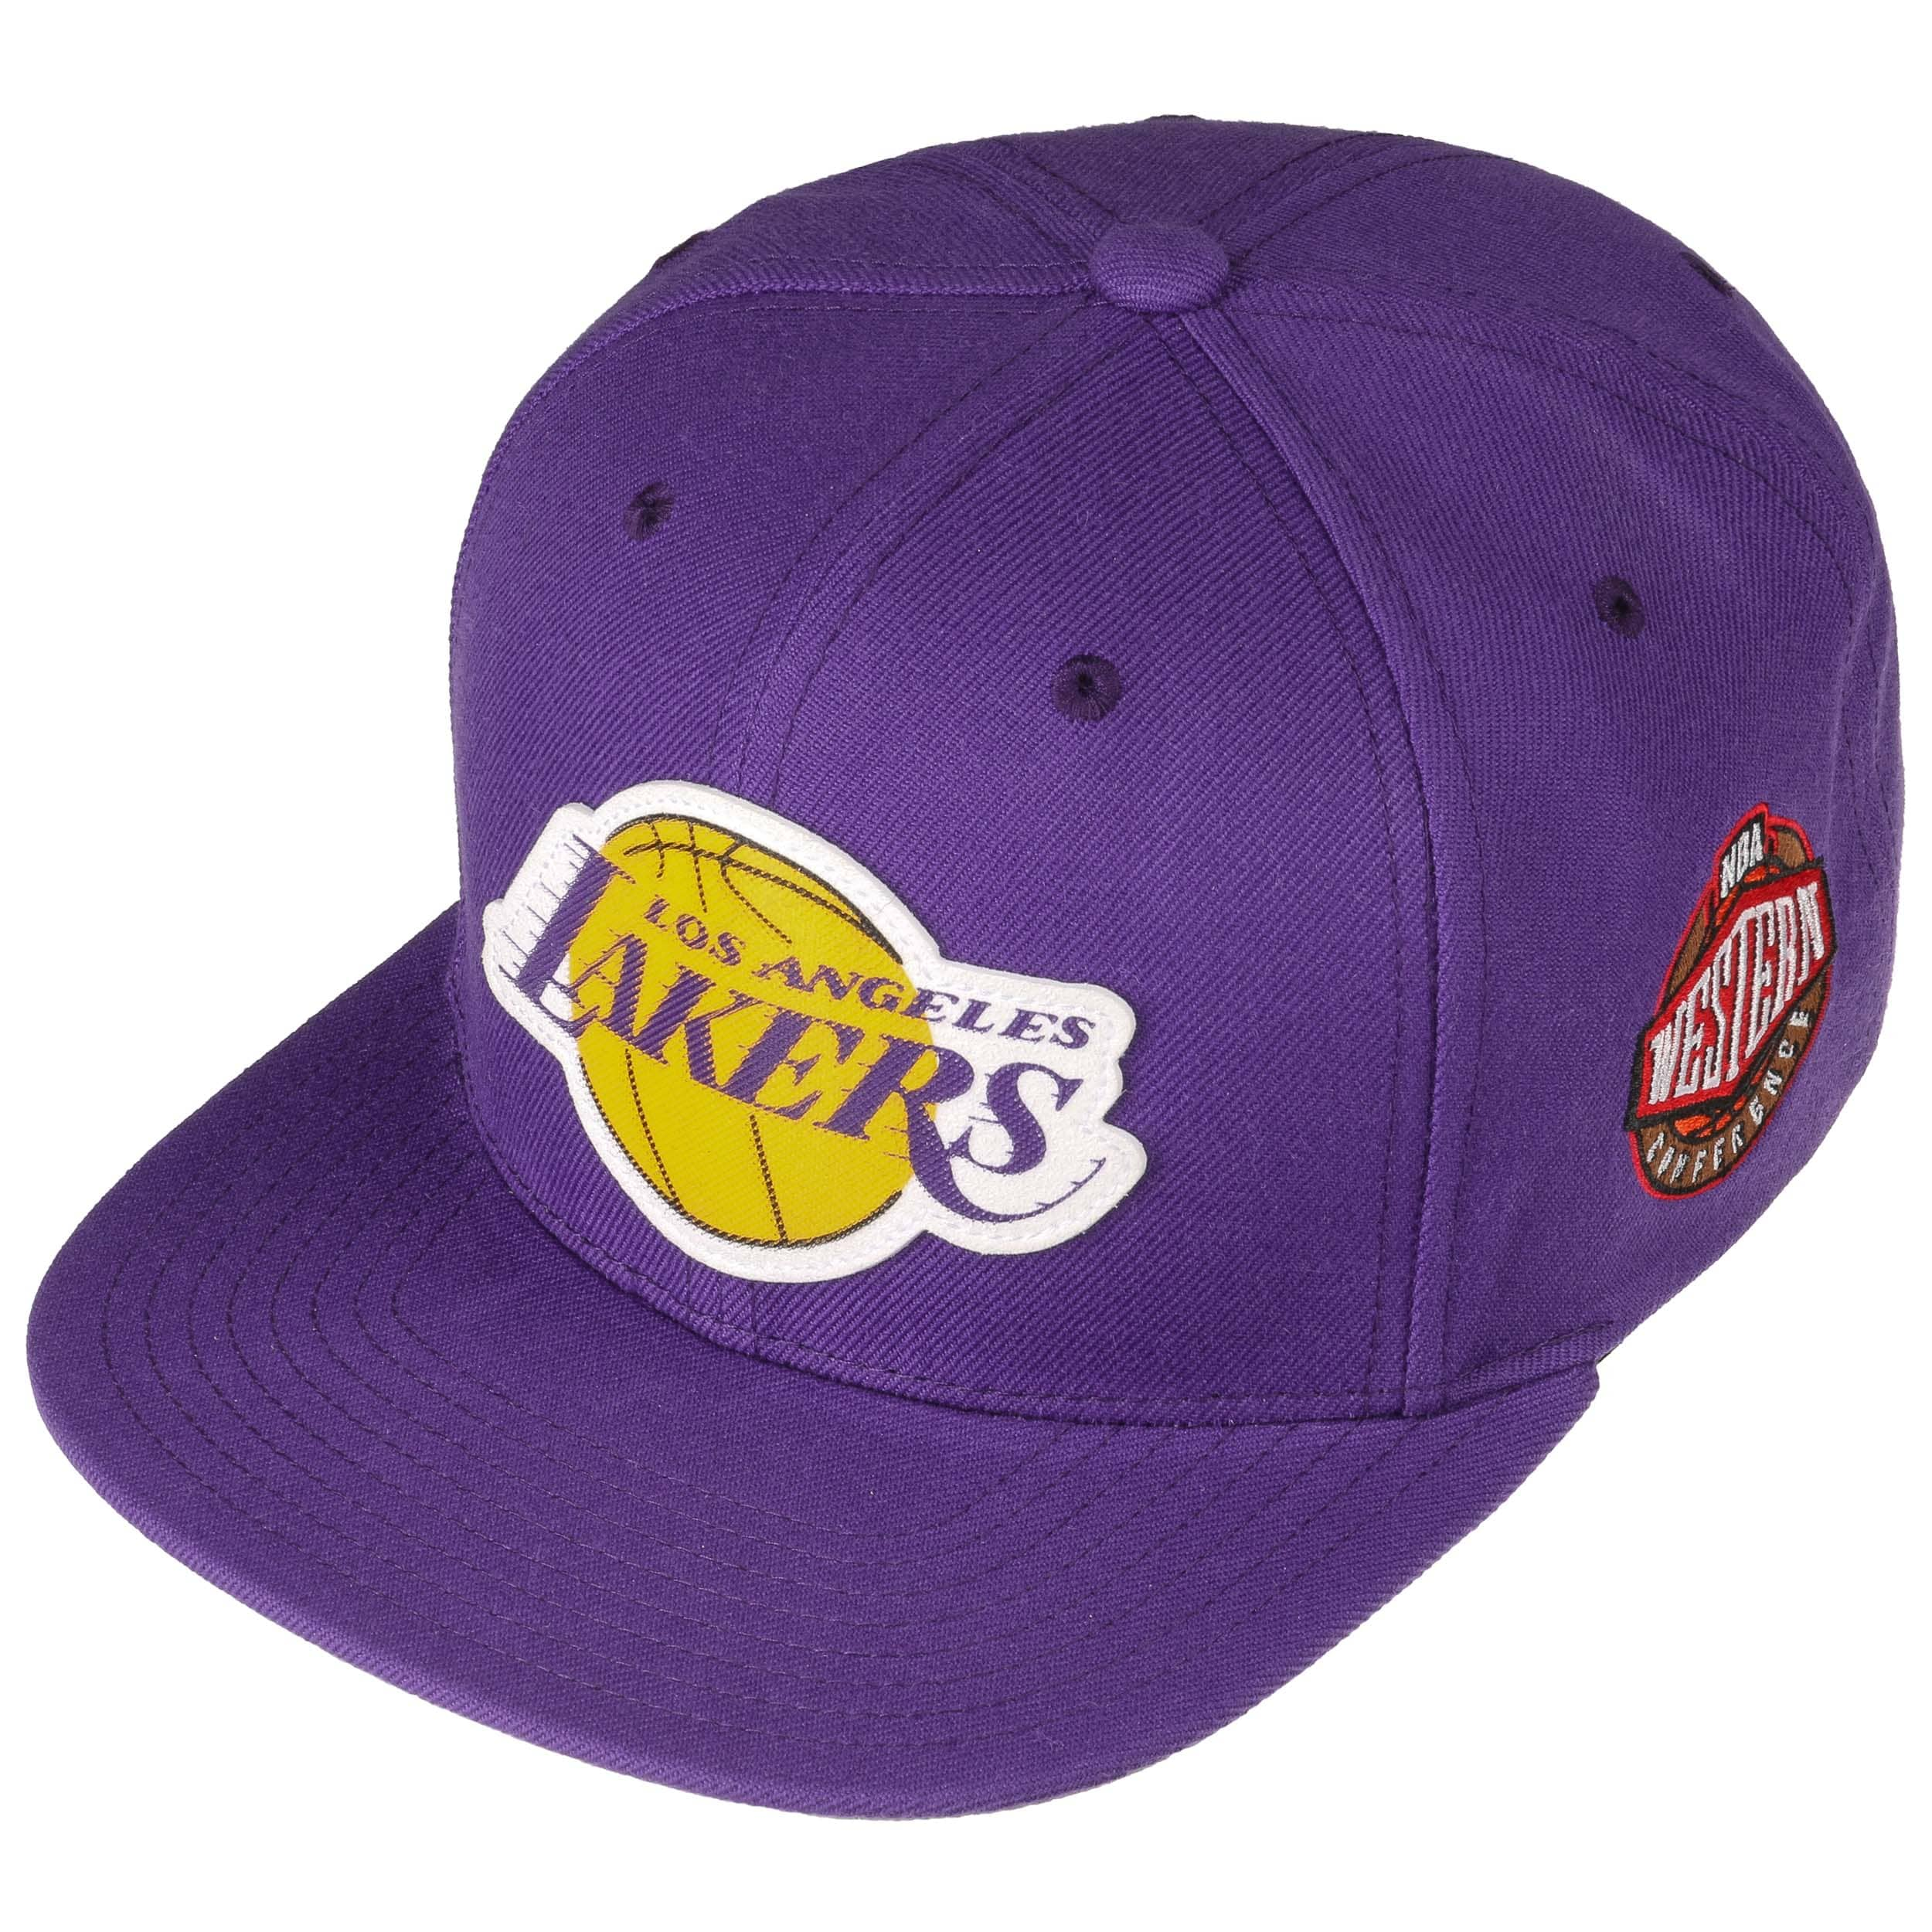 b8580cd48e Grass Current Lakers Cap by Mitchell   Ness - purple 1 ...